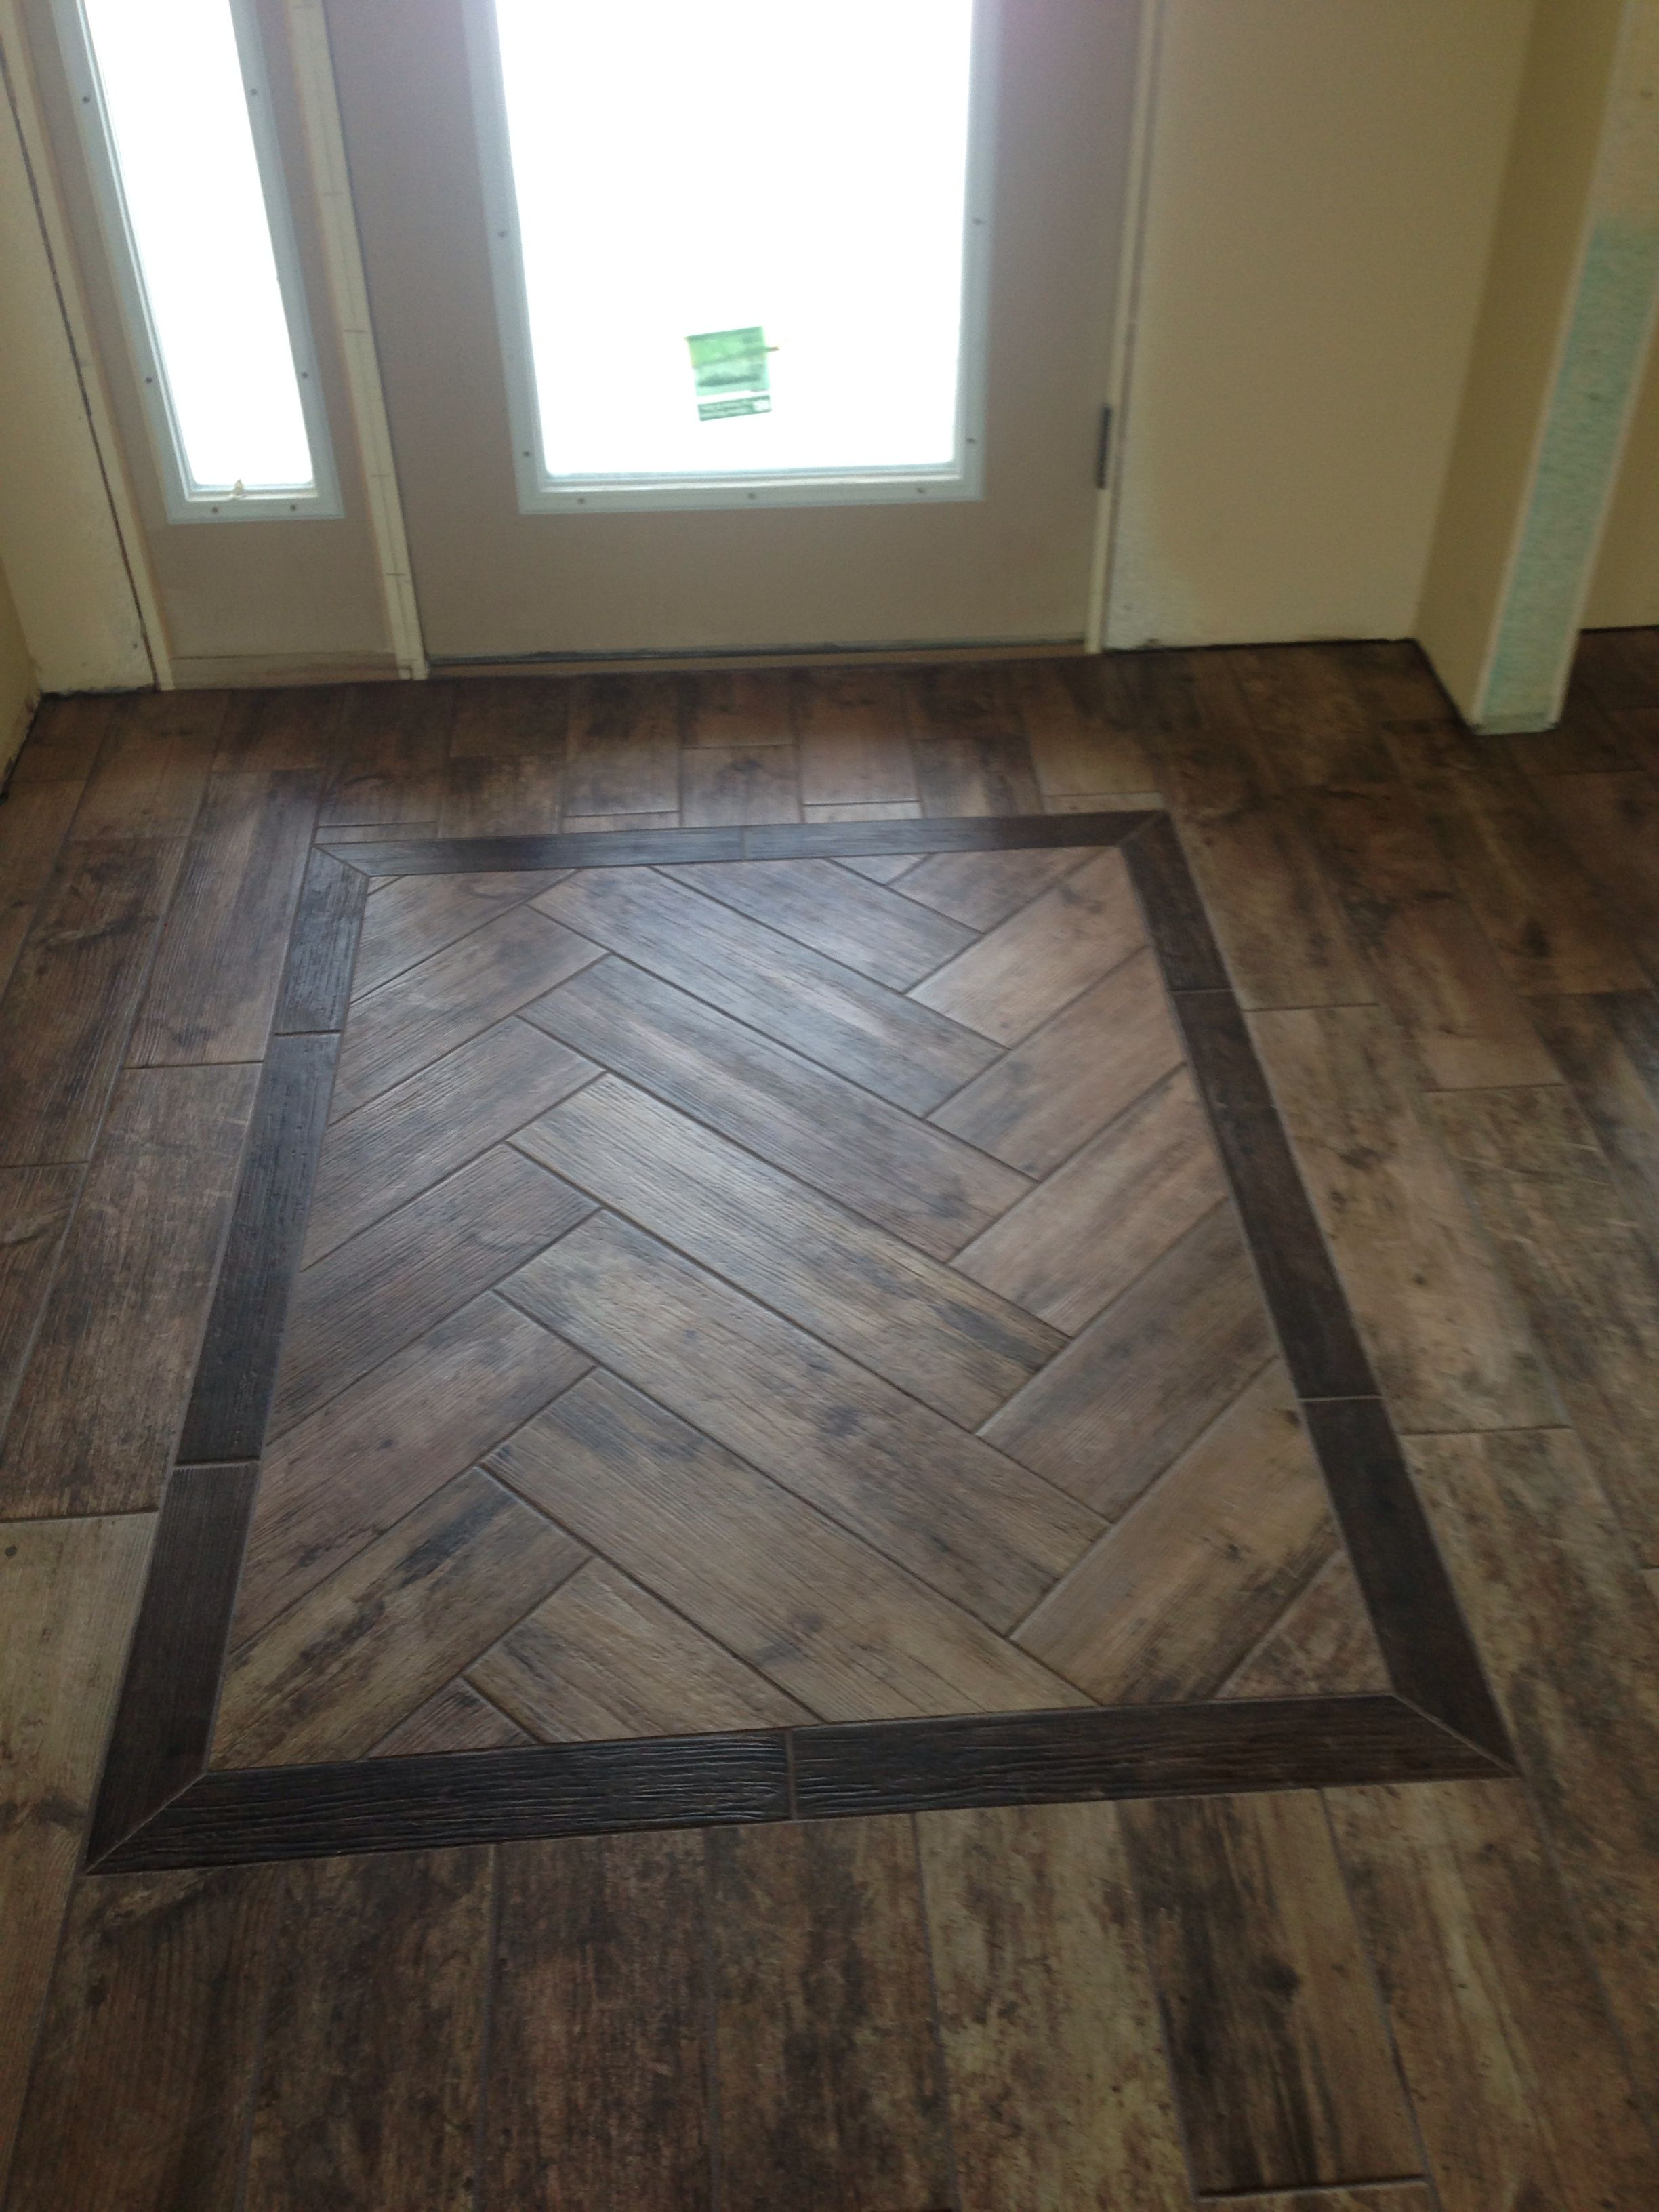 Wood Tile Herringbone Pattern Ceramic Wood Tile Floor Wood